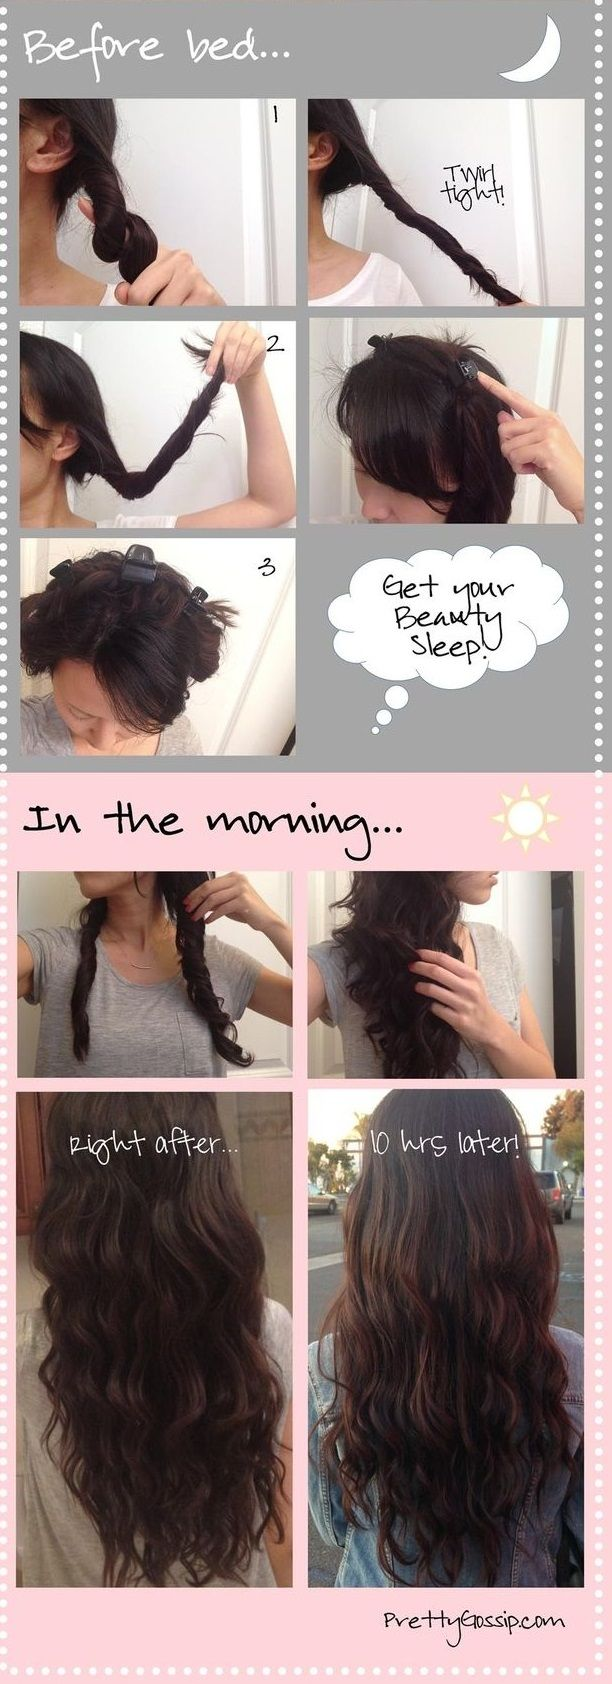 best hairstyles i enjoy images on pinterest hair colors